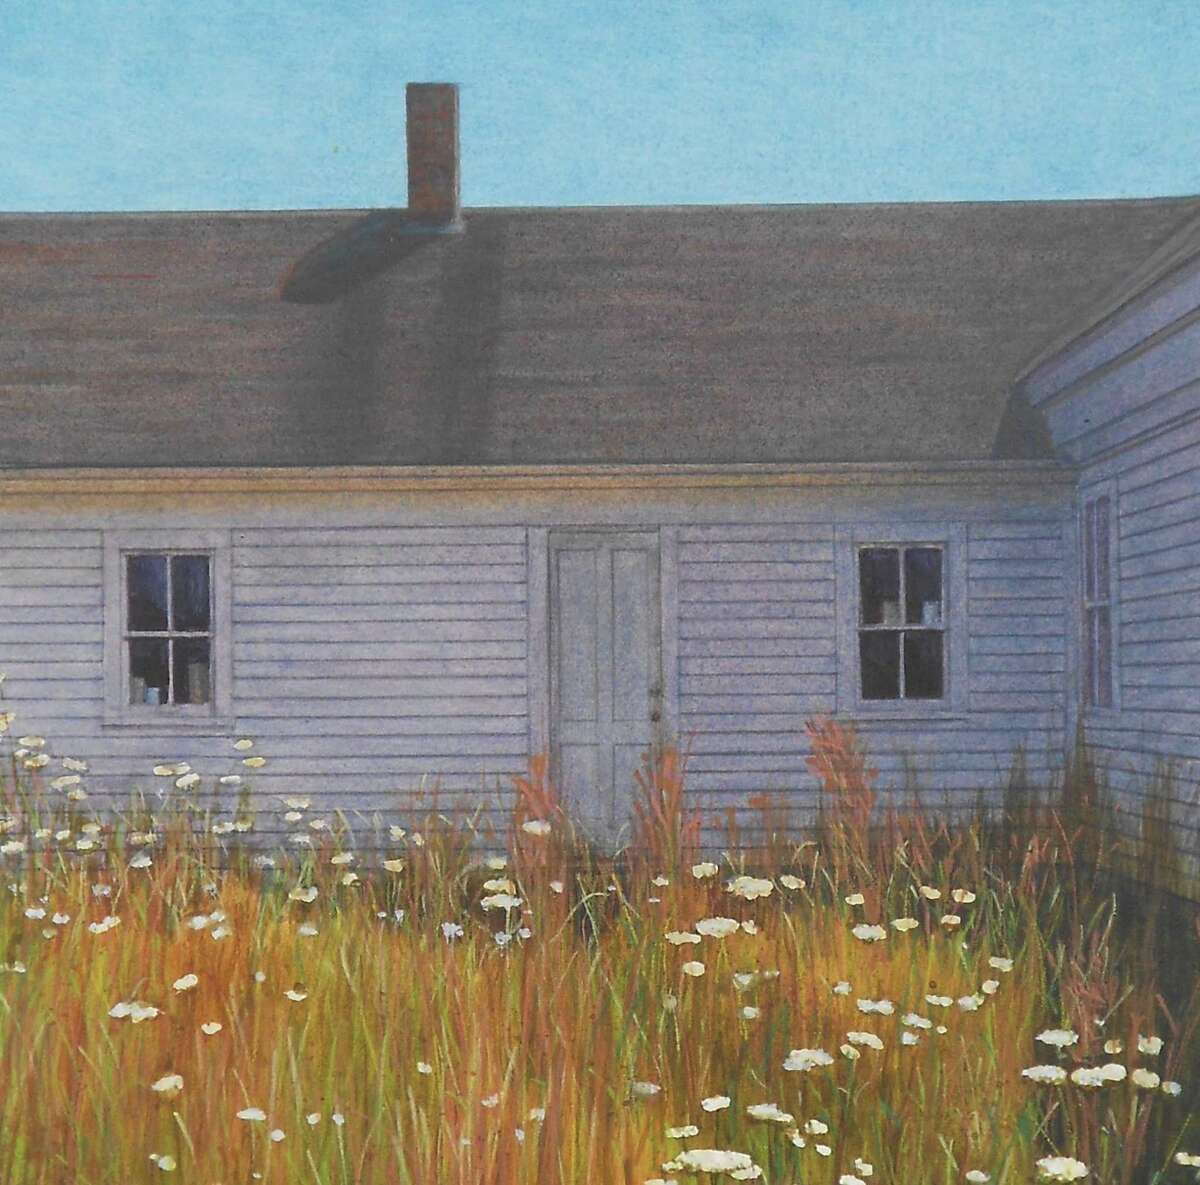 Is there a space you value as your own? The Bruce Museum in Greenwich is asking aspiring artists to create a 6-inch-by-6-inch square artwork of that space for an upcoming exhibit of user-created art called